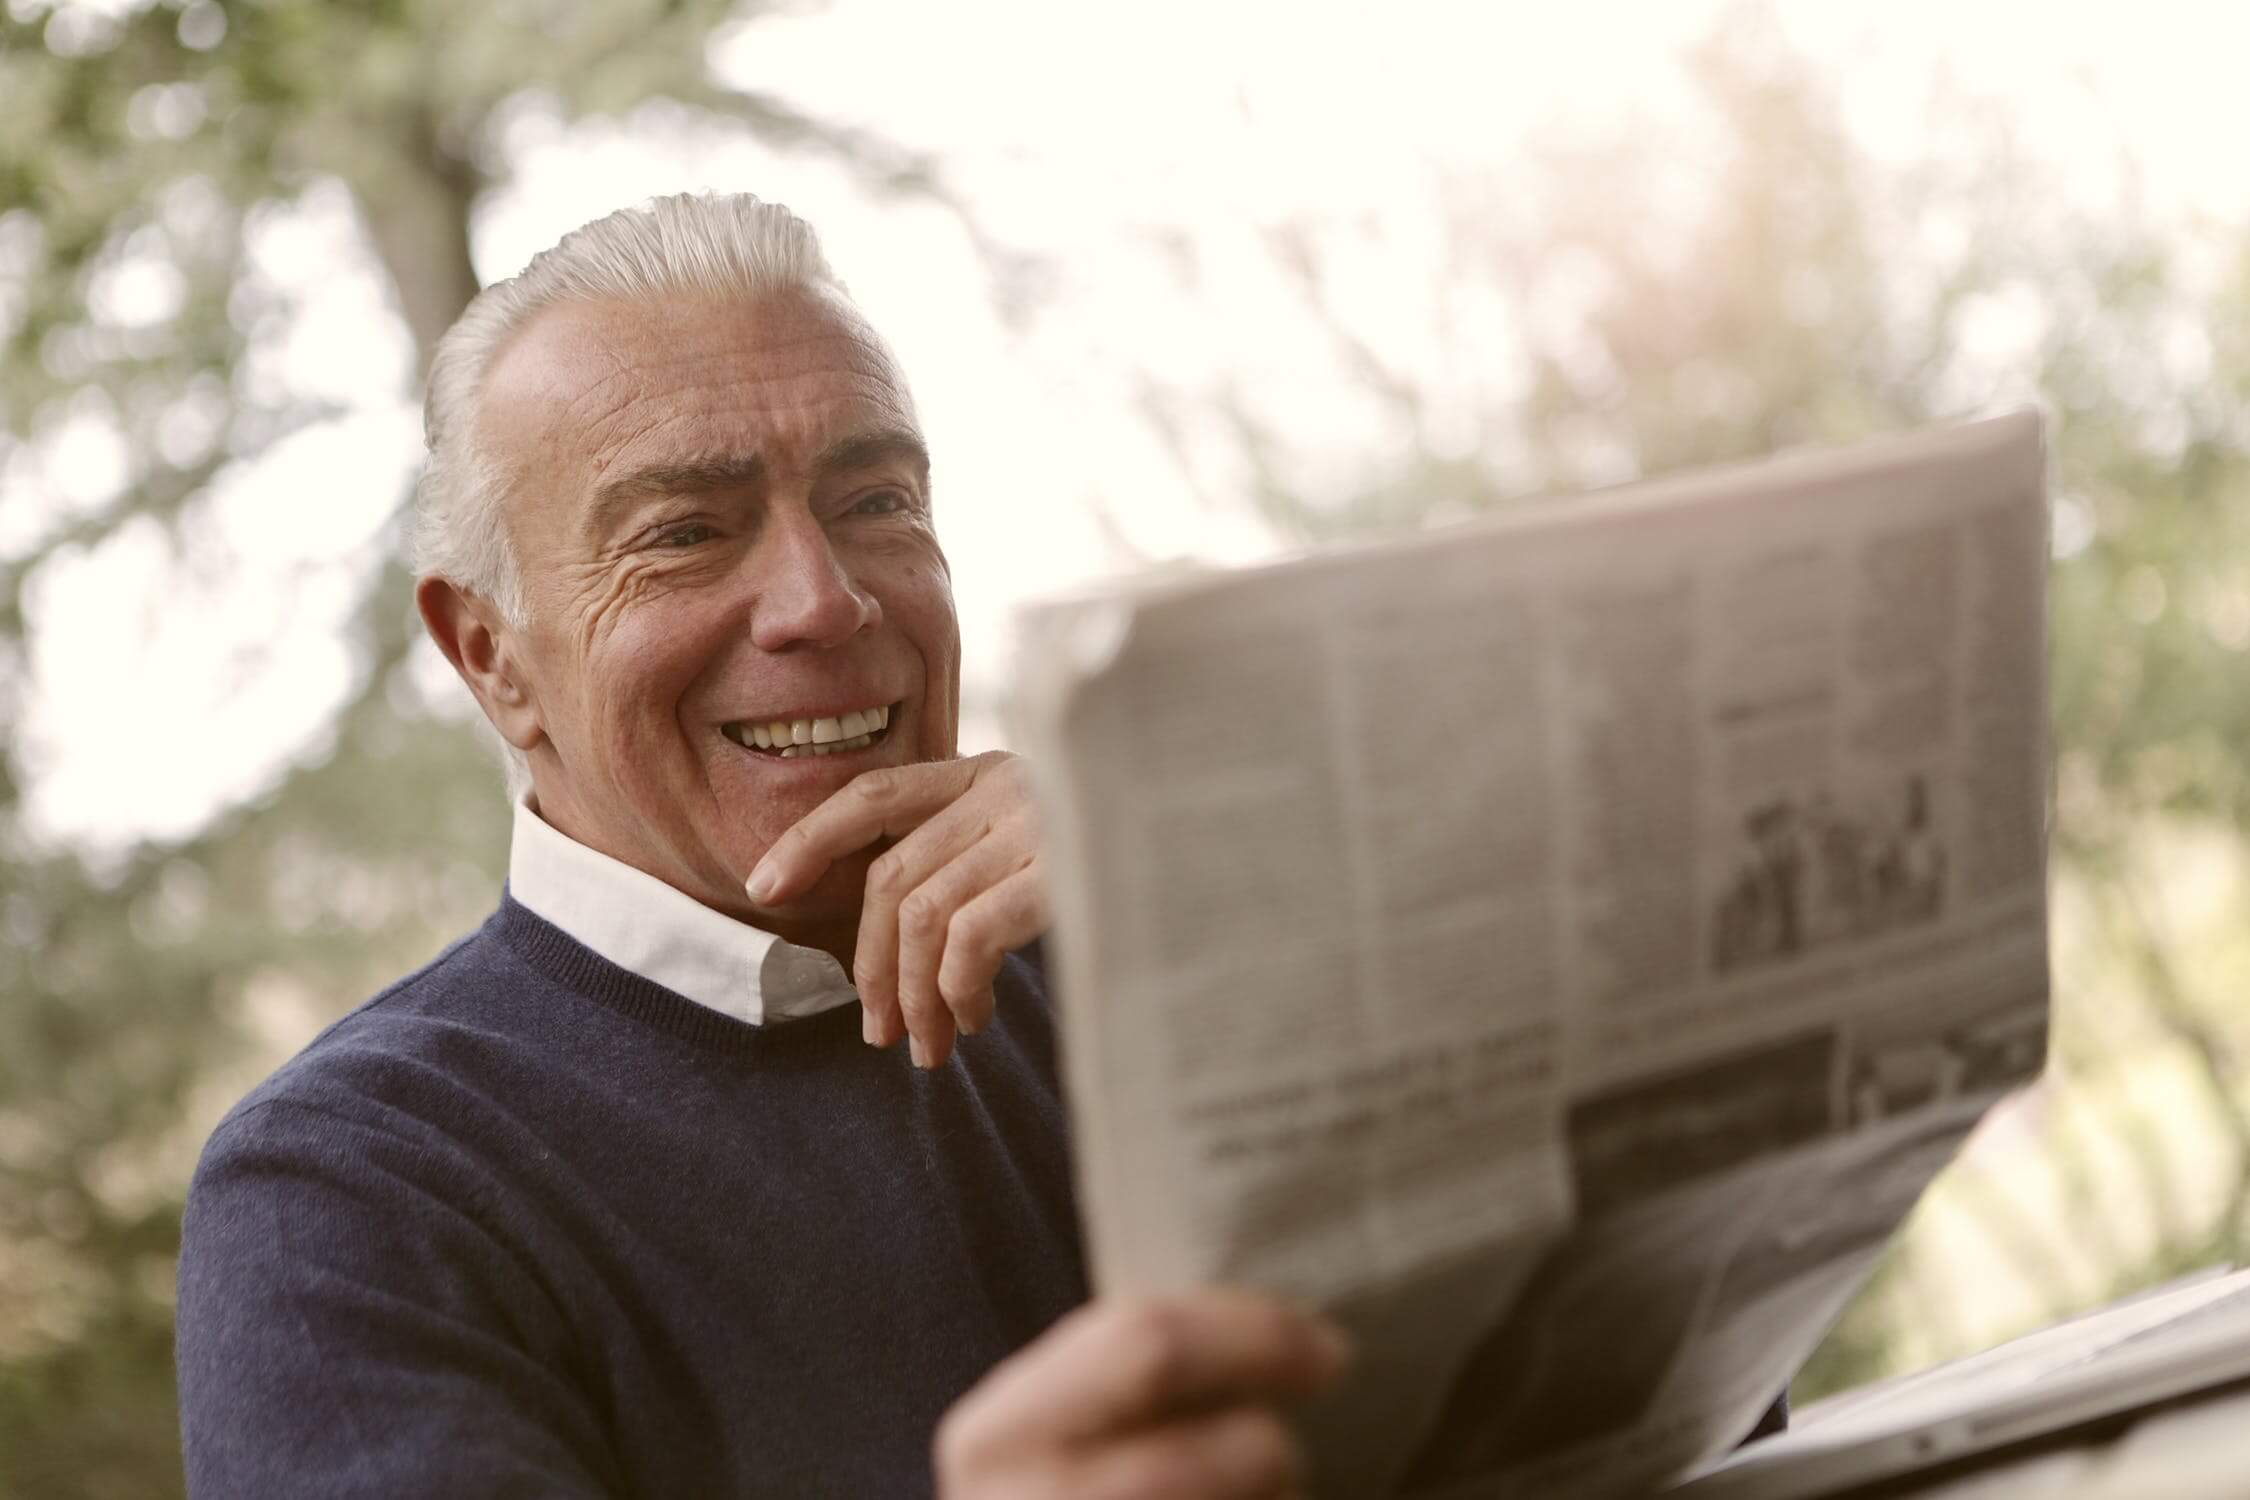 A man smiling while reading the newspaper